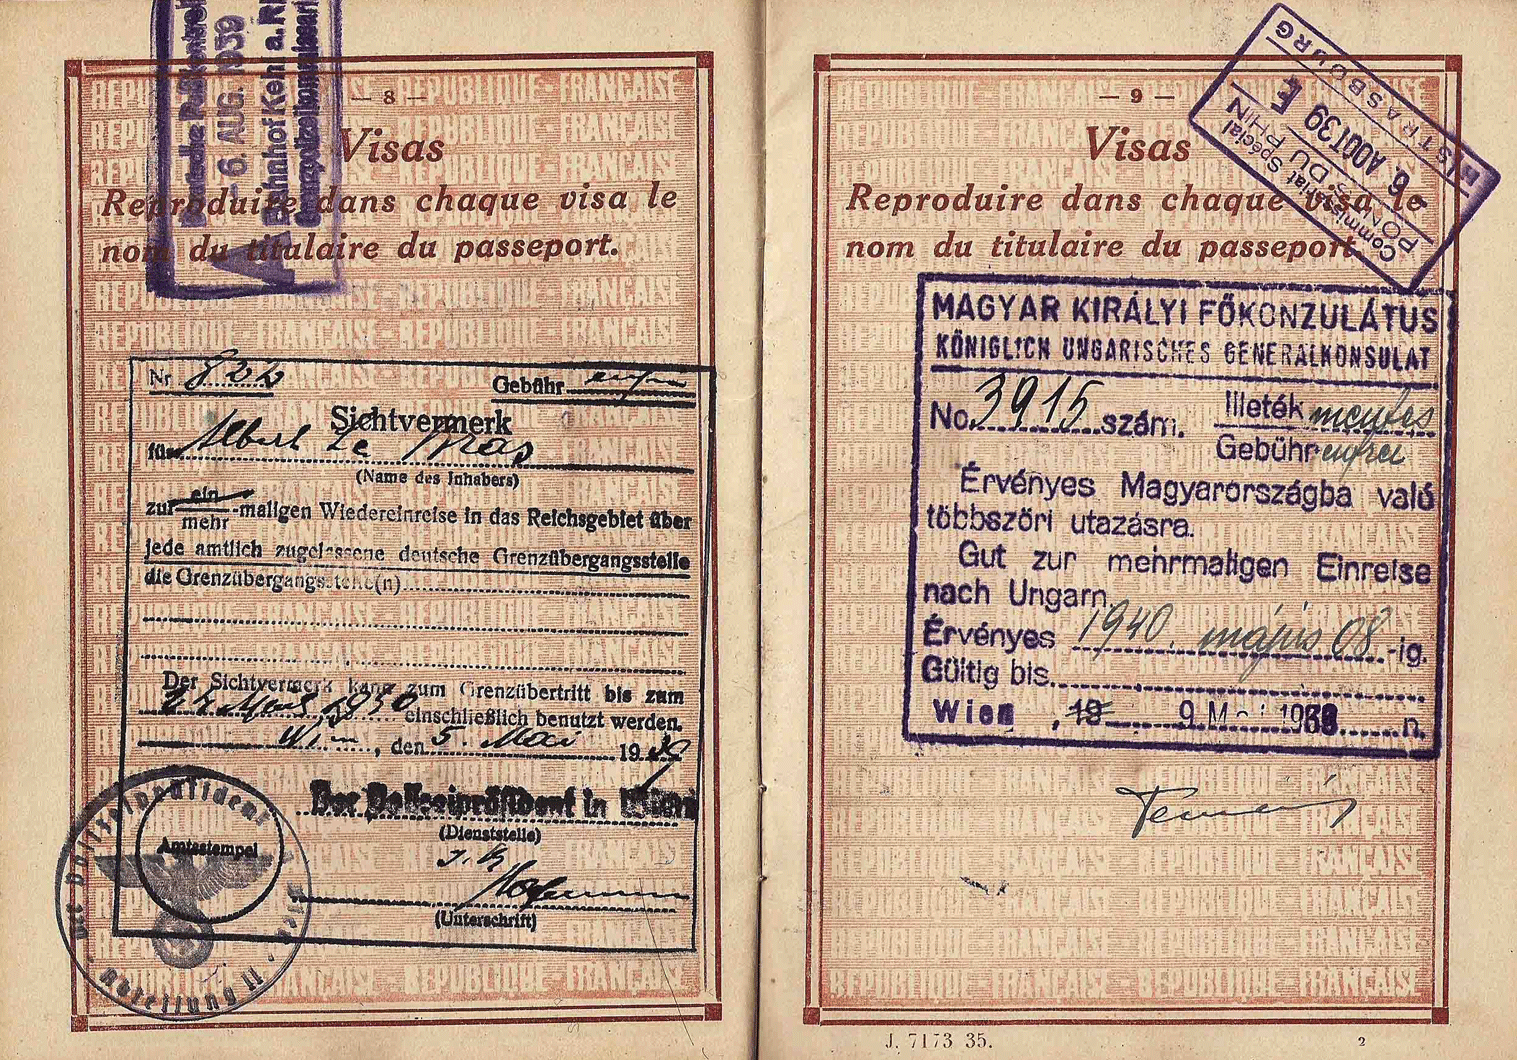 WW2 French passport